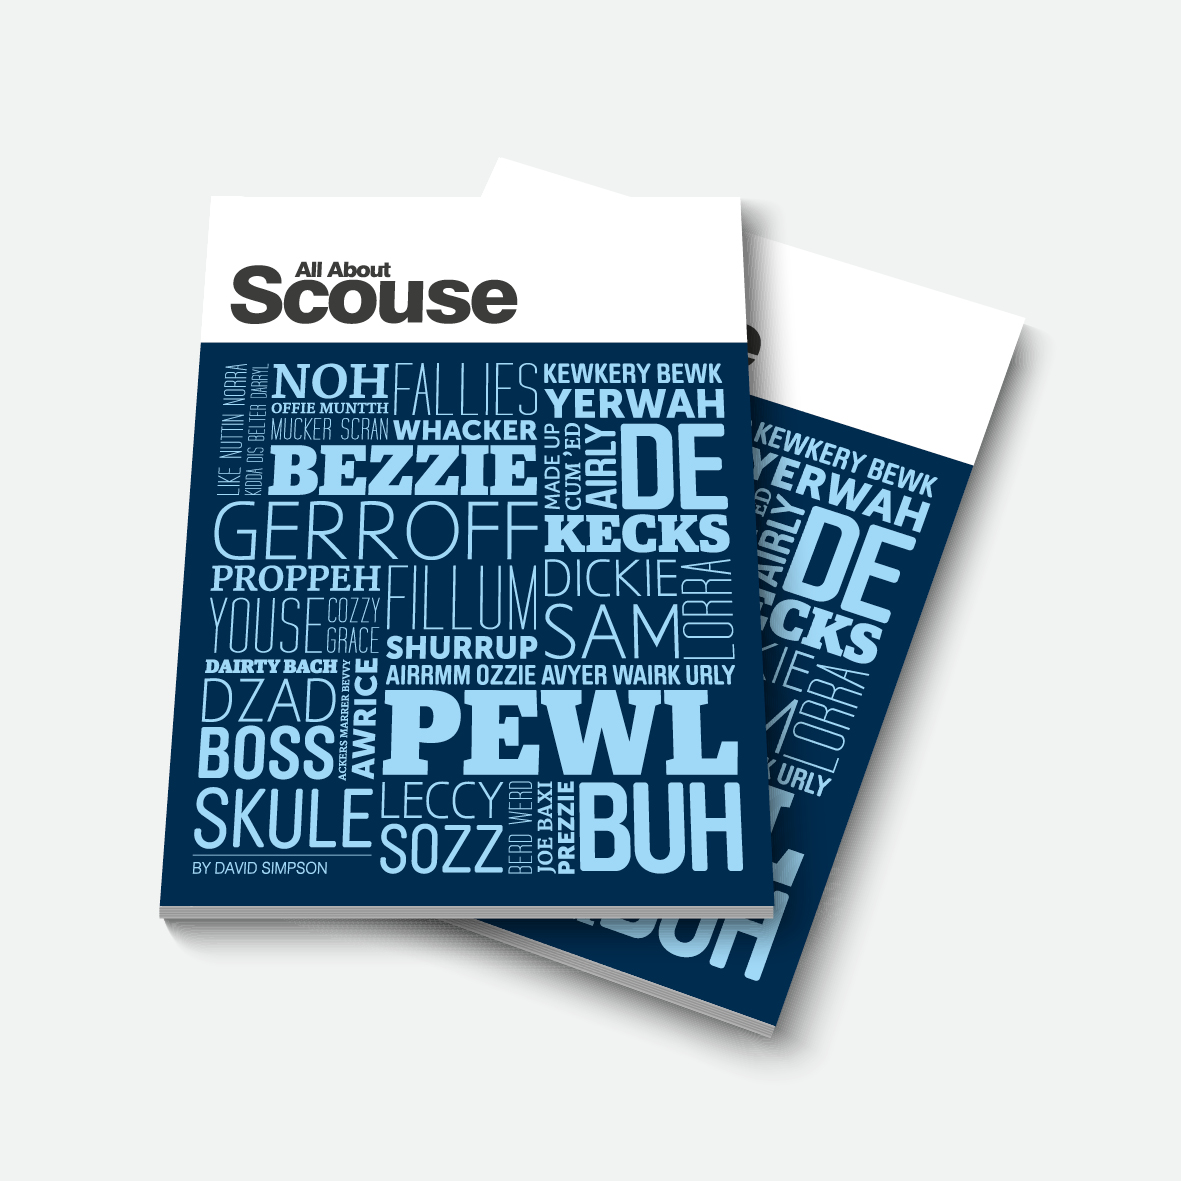 Scouse Book All About Scouse Liverpool Gift Company